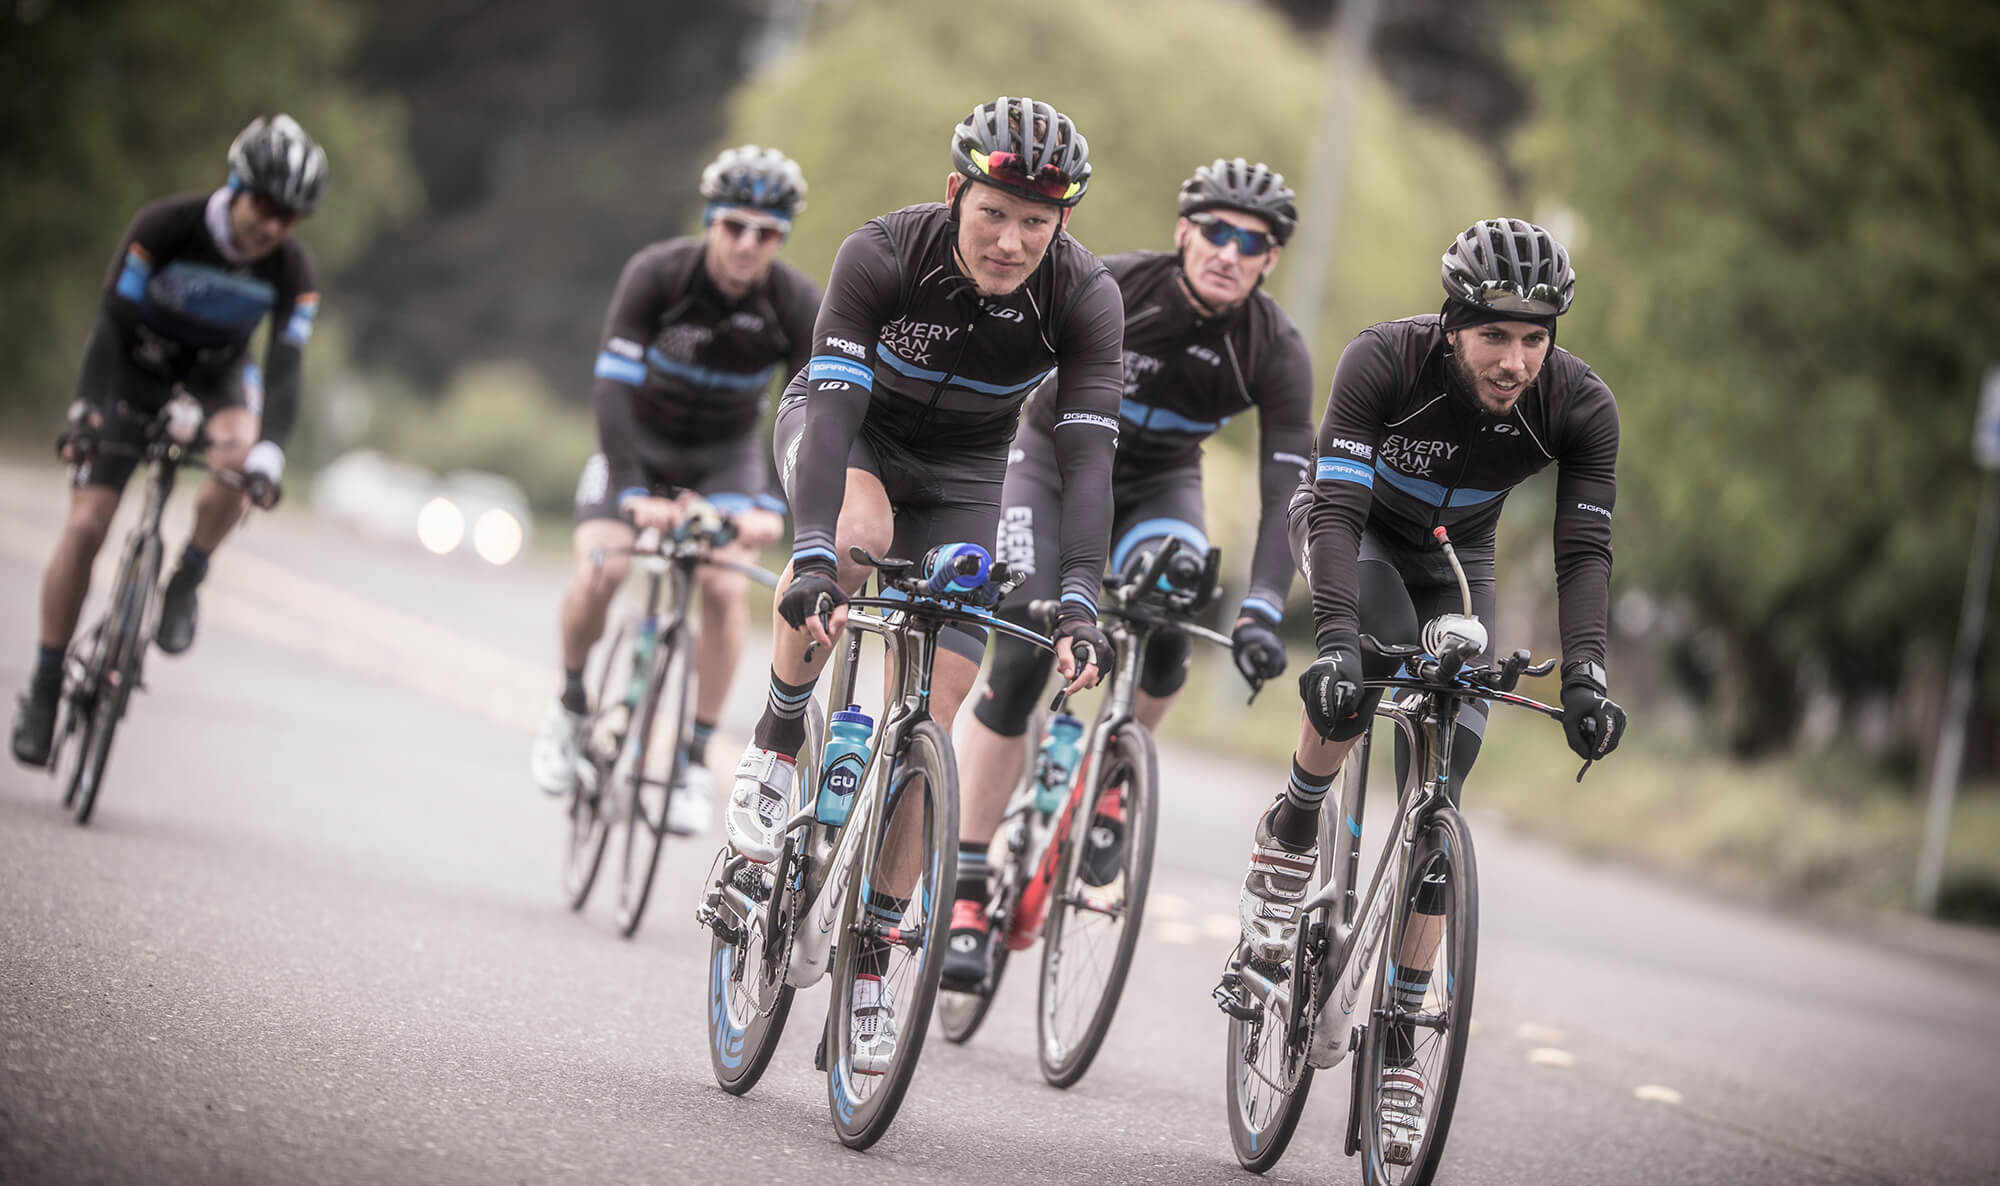 Every Man Jack Triarthlon Team on a training ride